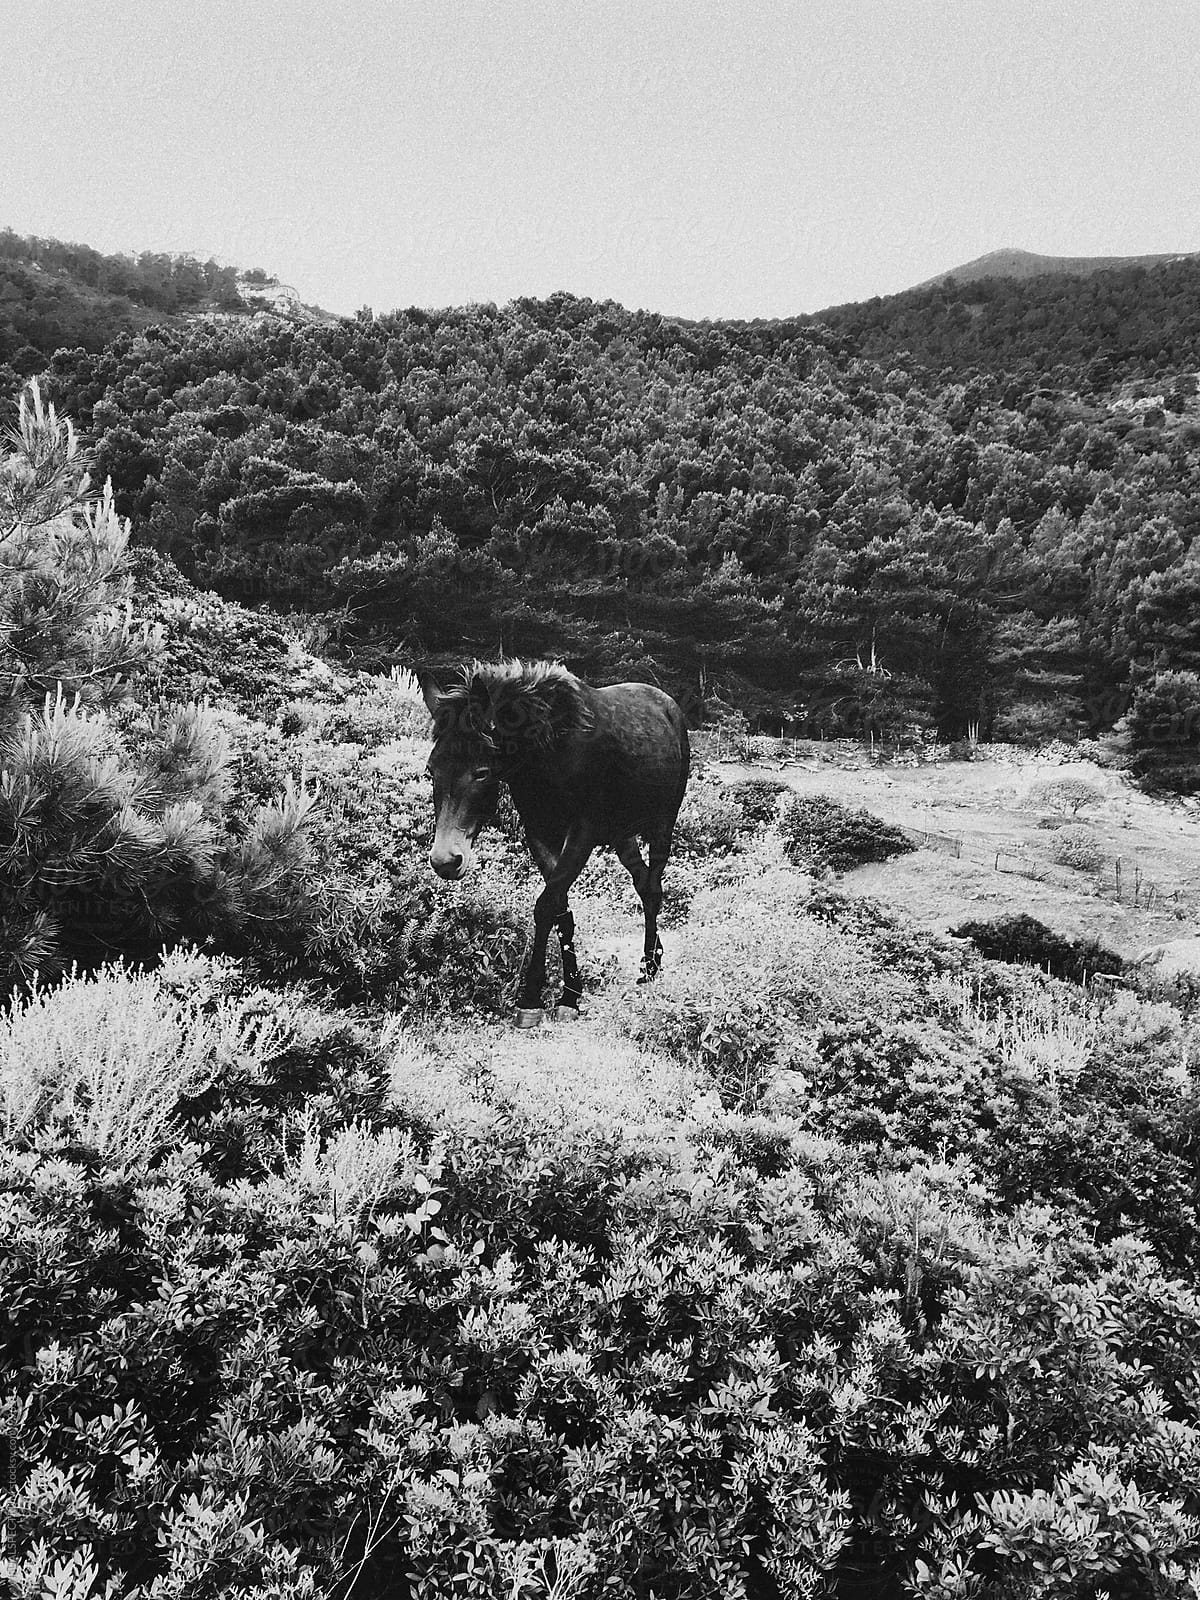 Walking wild horse in black and white